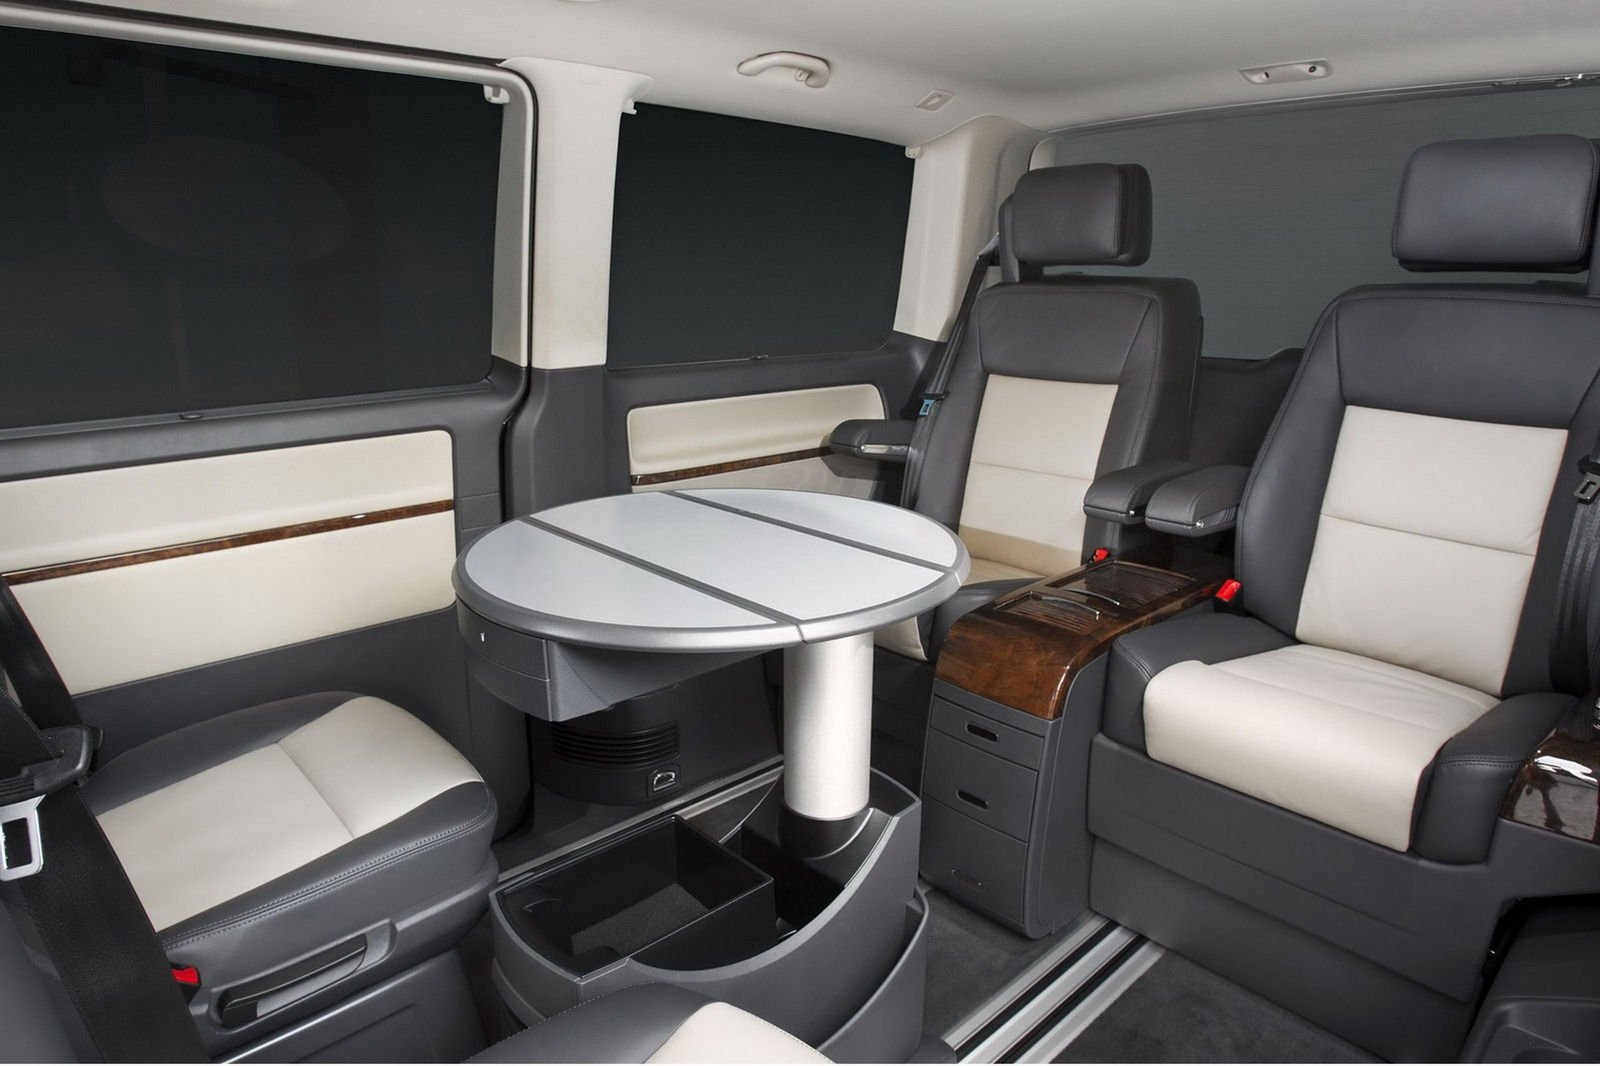 Volkswagen Caravelle Luxurious Business Edition